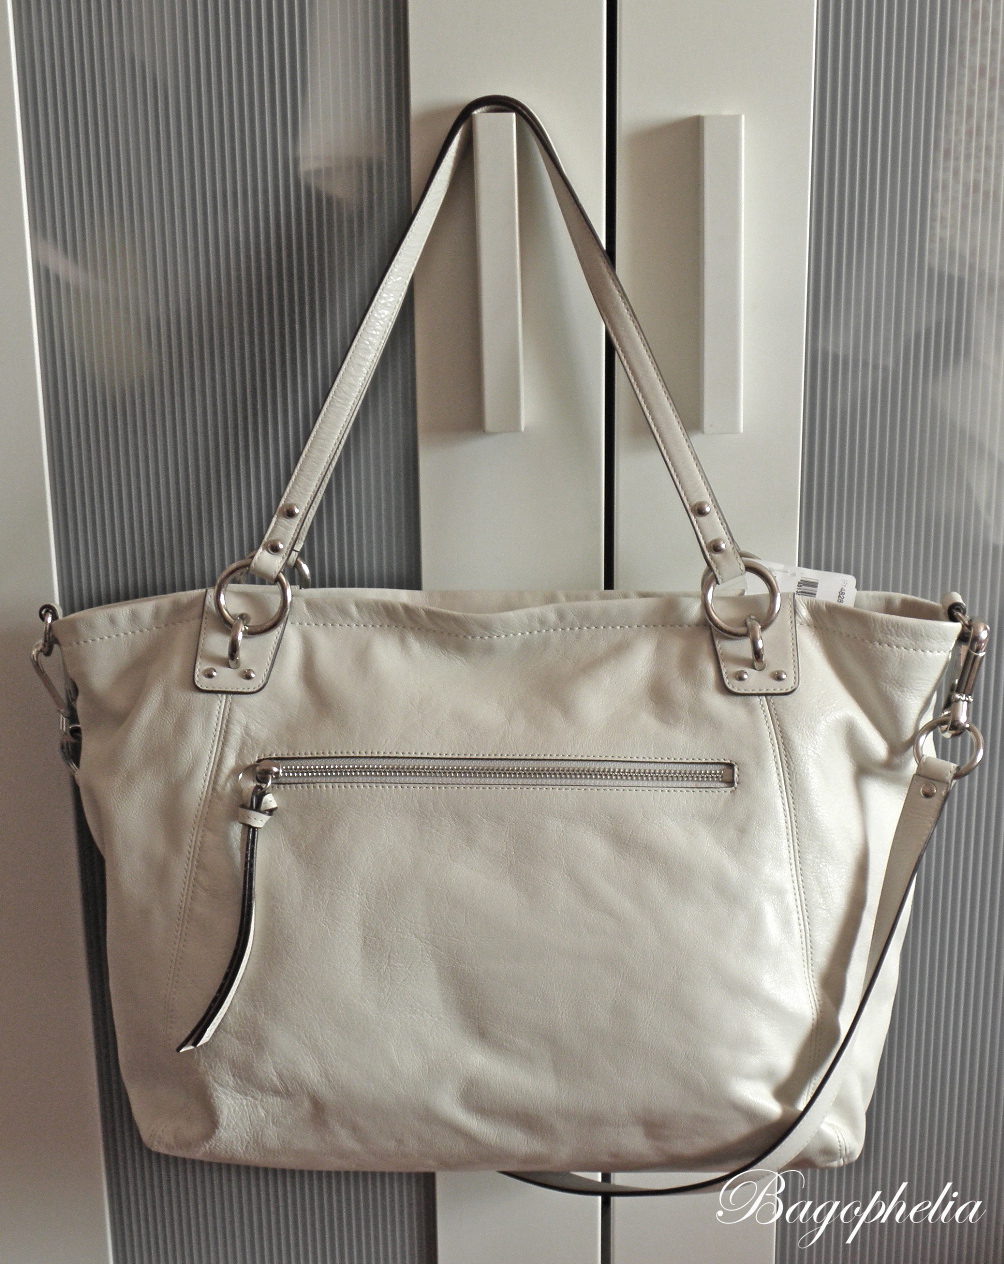 BNWT Coach XL Leather Charm Tote in White  14828  SOLD!   a352710e96b95